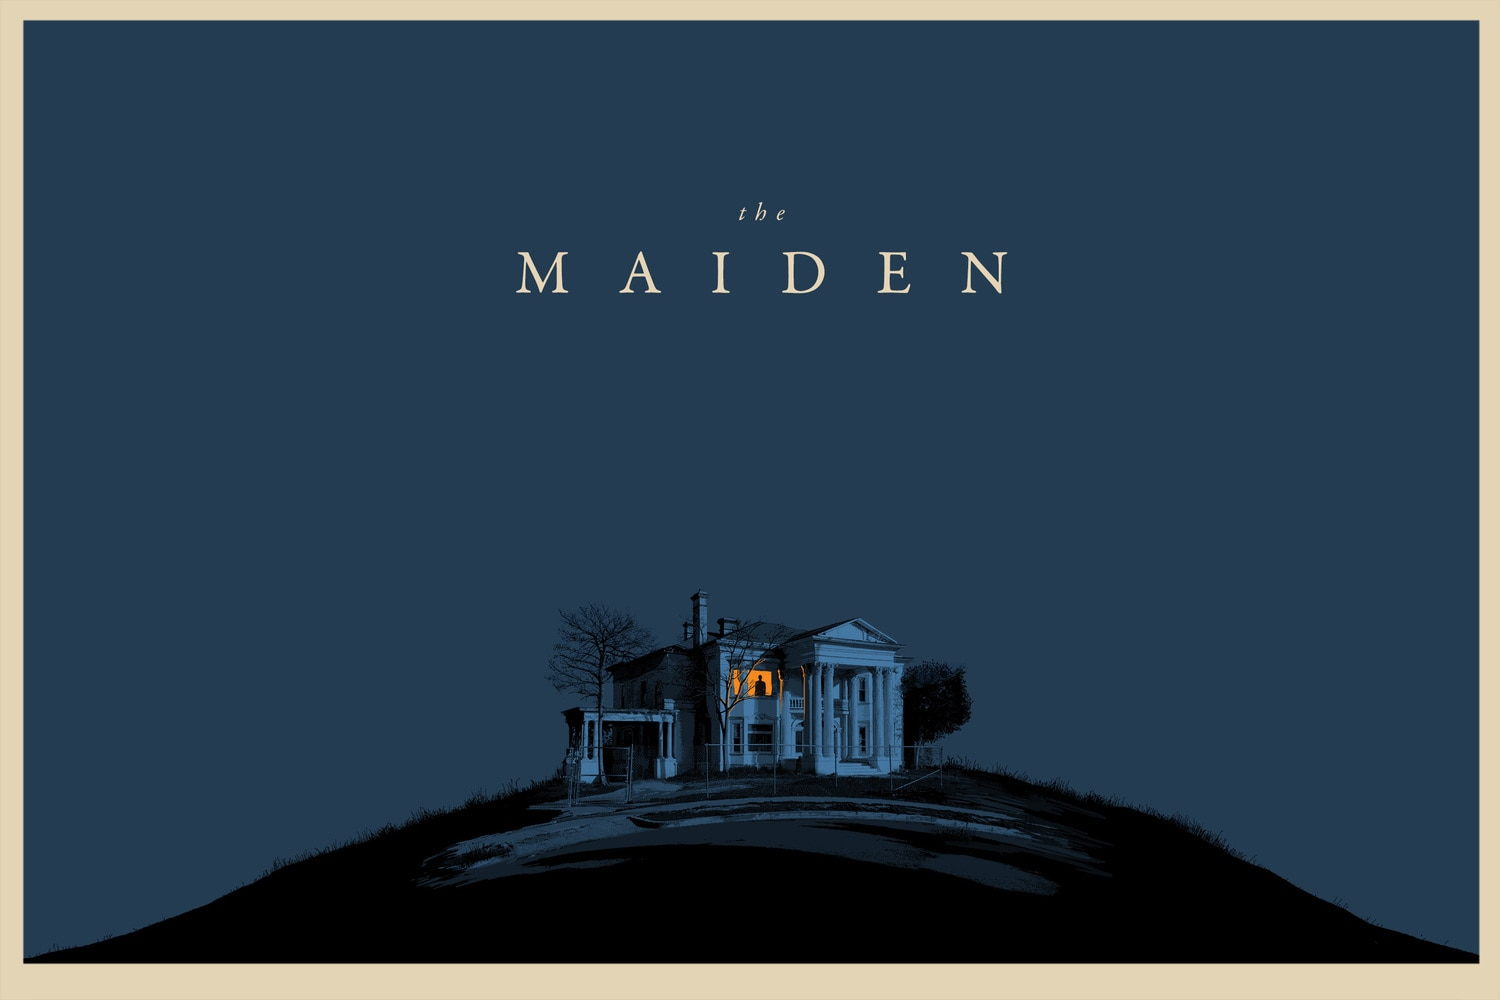 maiden quad poster - The Horrors of House-Hunting in Supernatural Short The Maiden